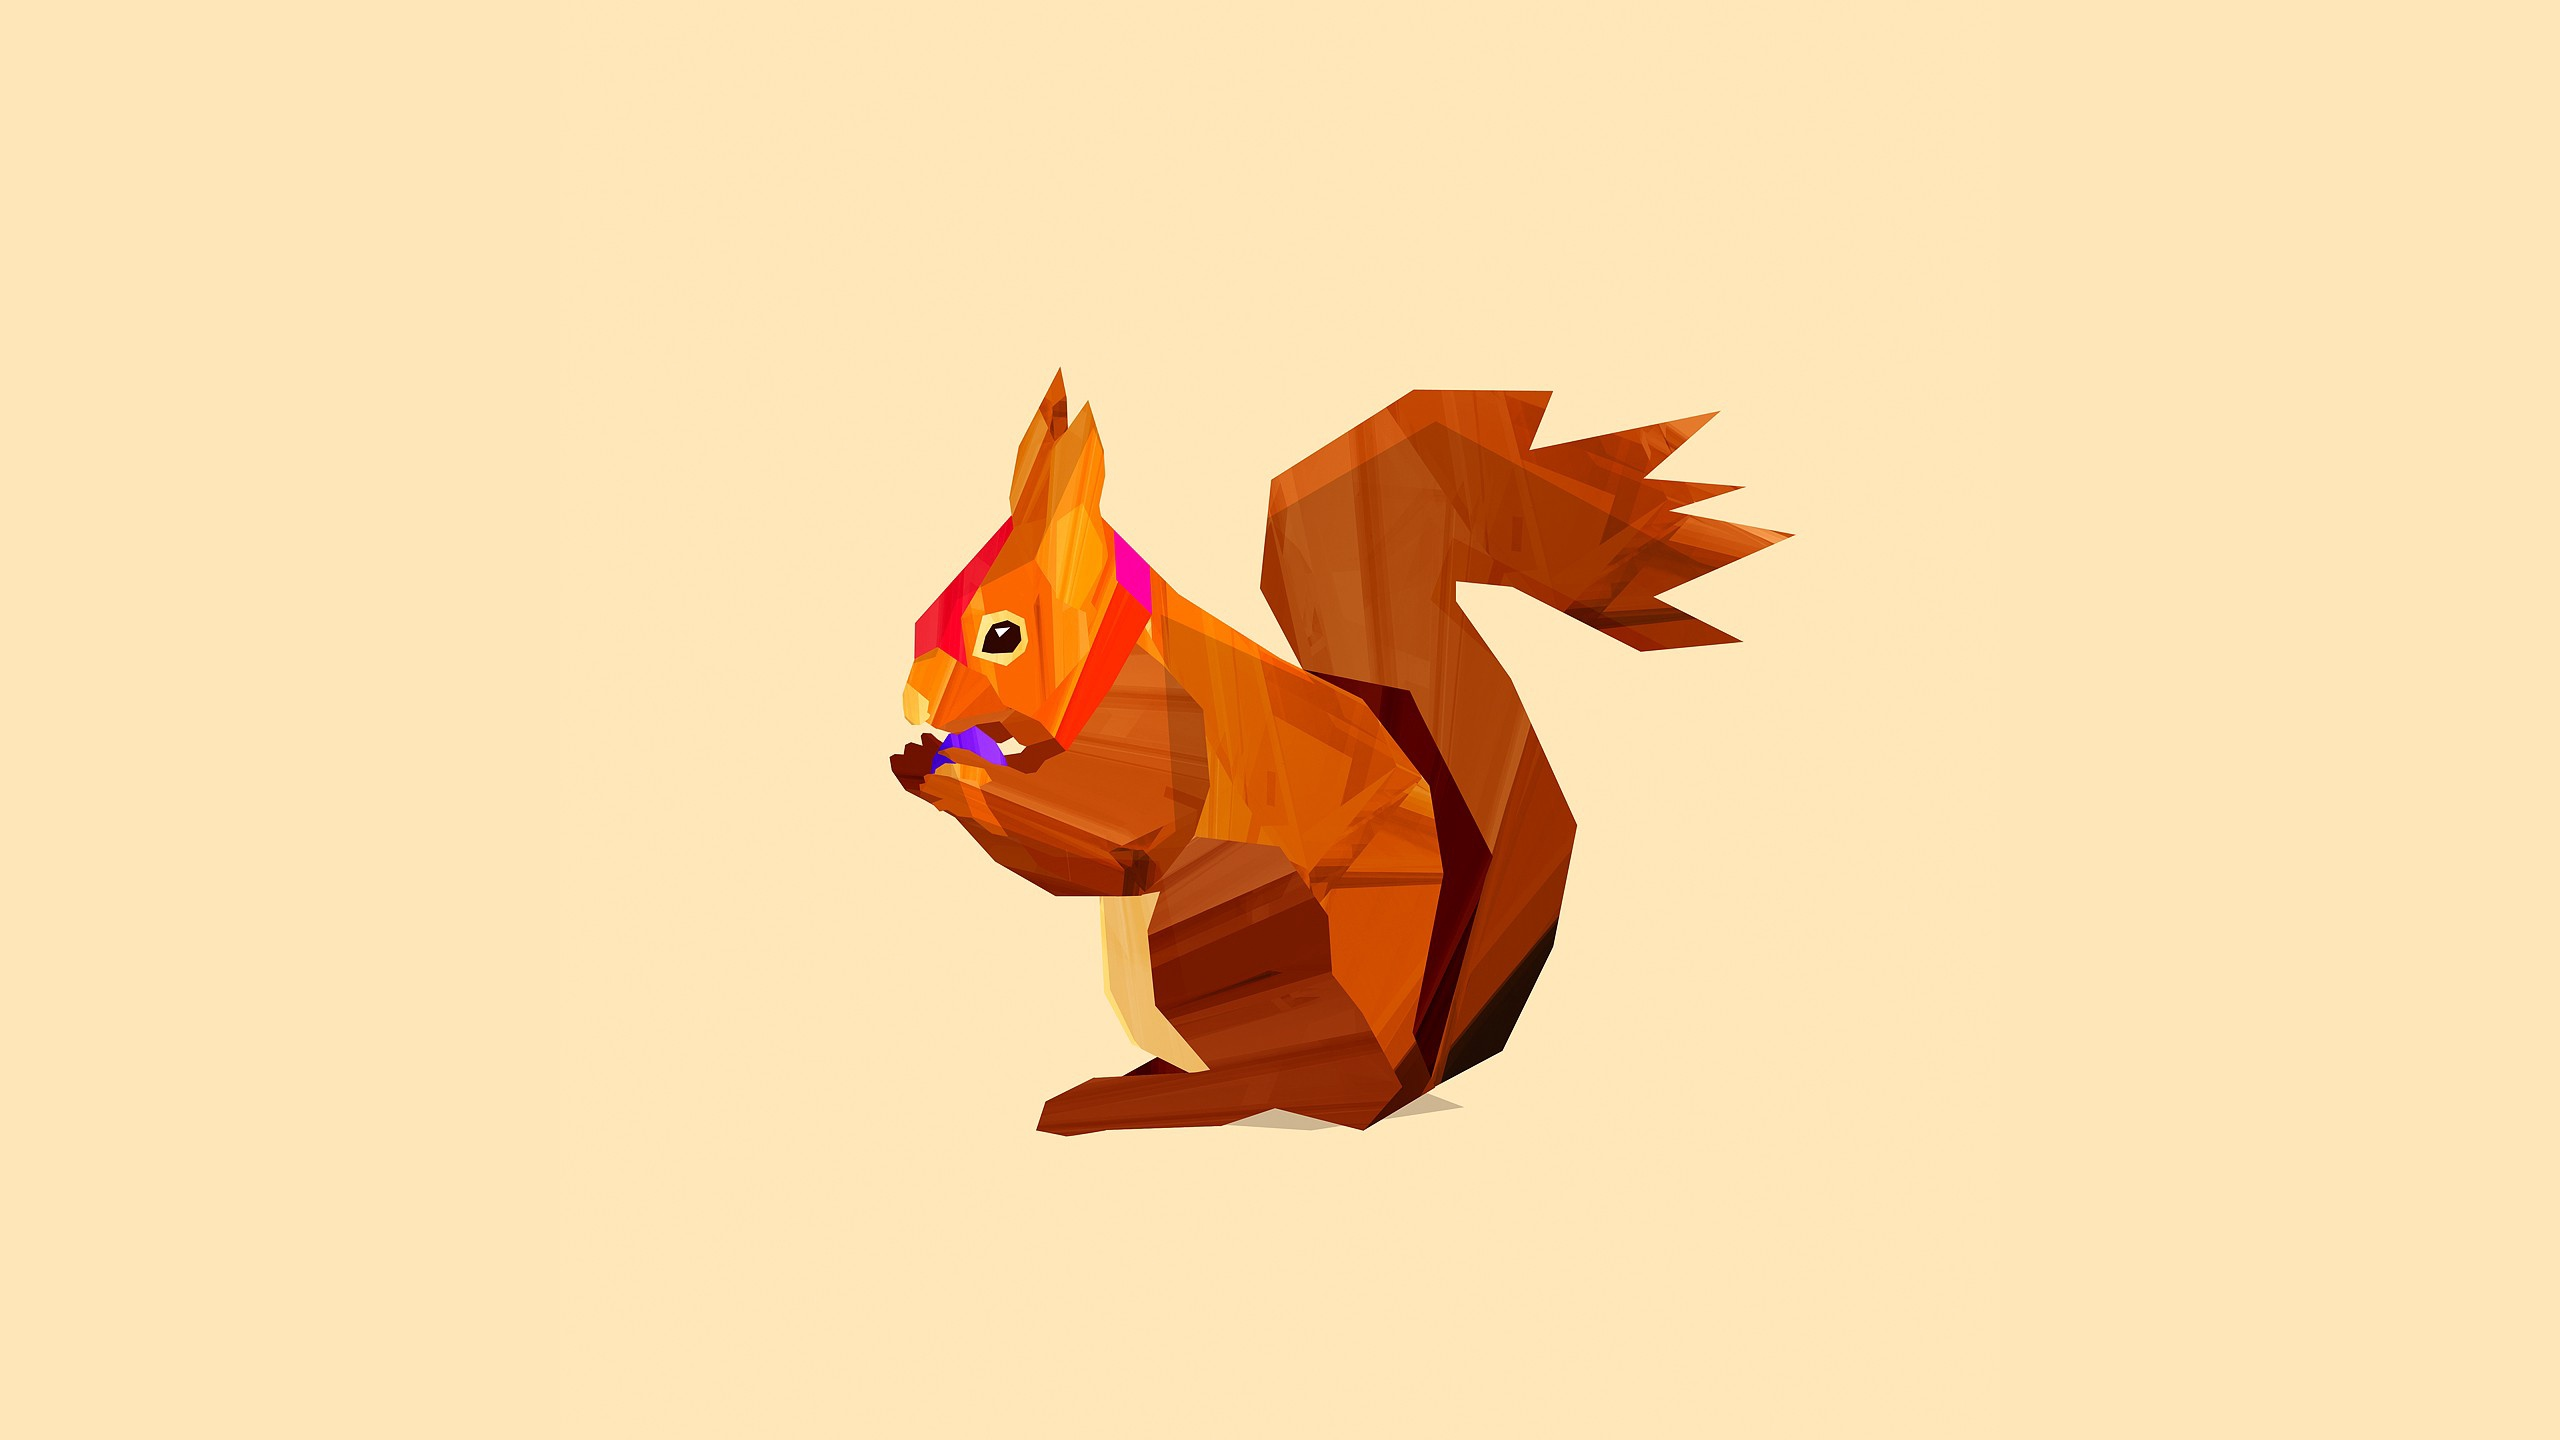 Download wallpaper 2560x1440 squirrel, drawing, wood hd background